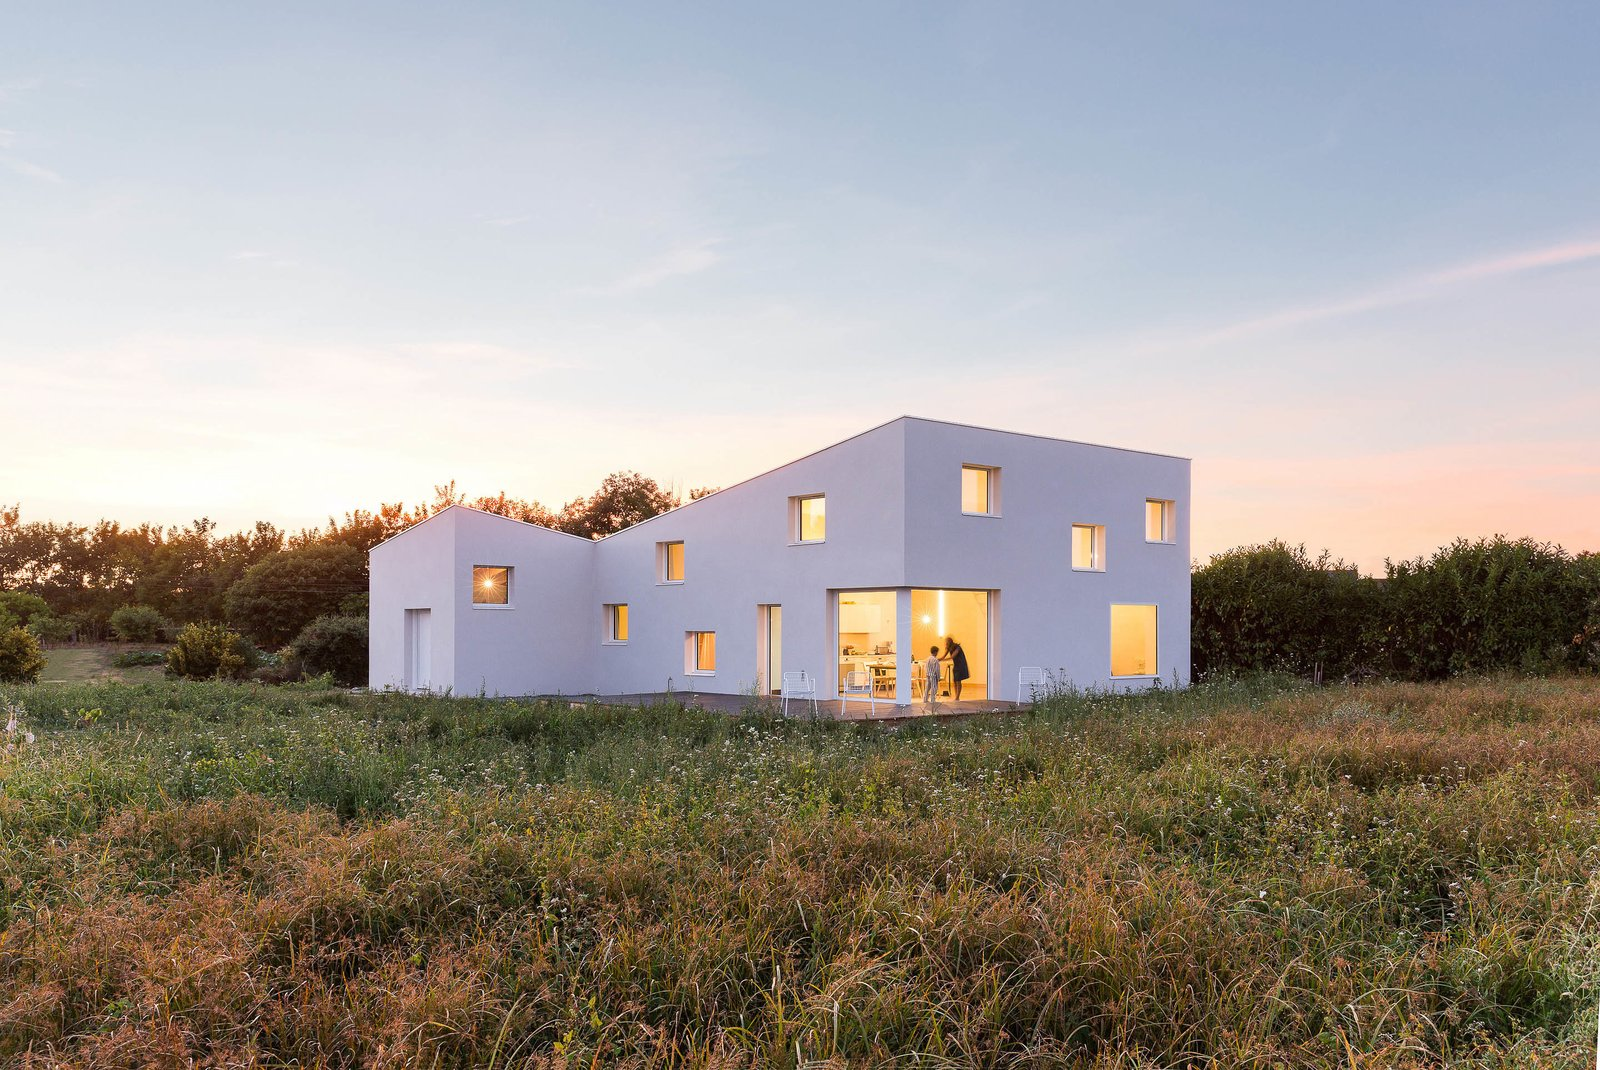 The defining concept for this house, commissioned by a photographer as both his summer house and studio, was based on developed facade studies which define a simple and smooth building skin varied in height and punctured by openings.